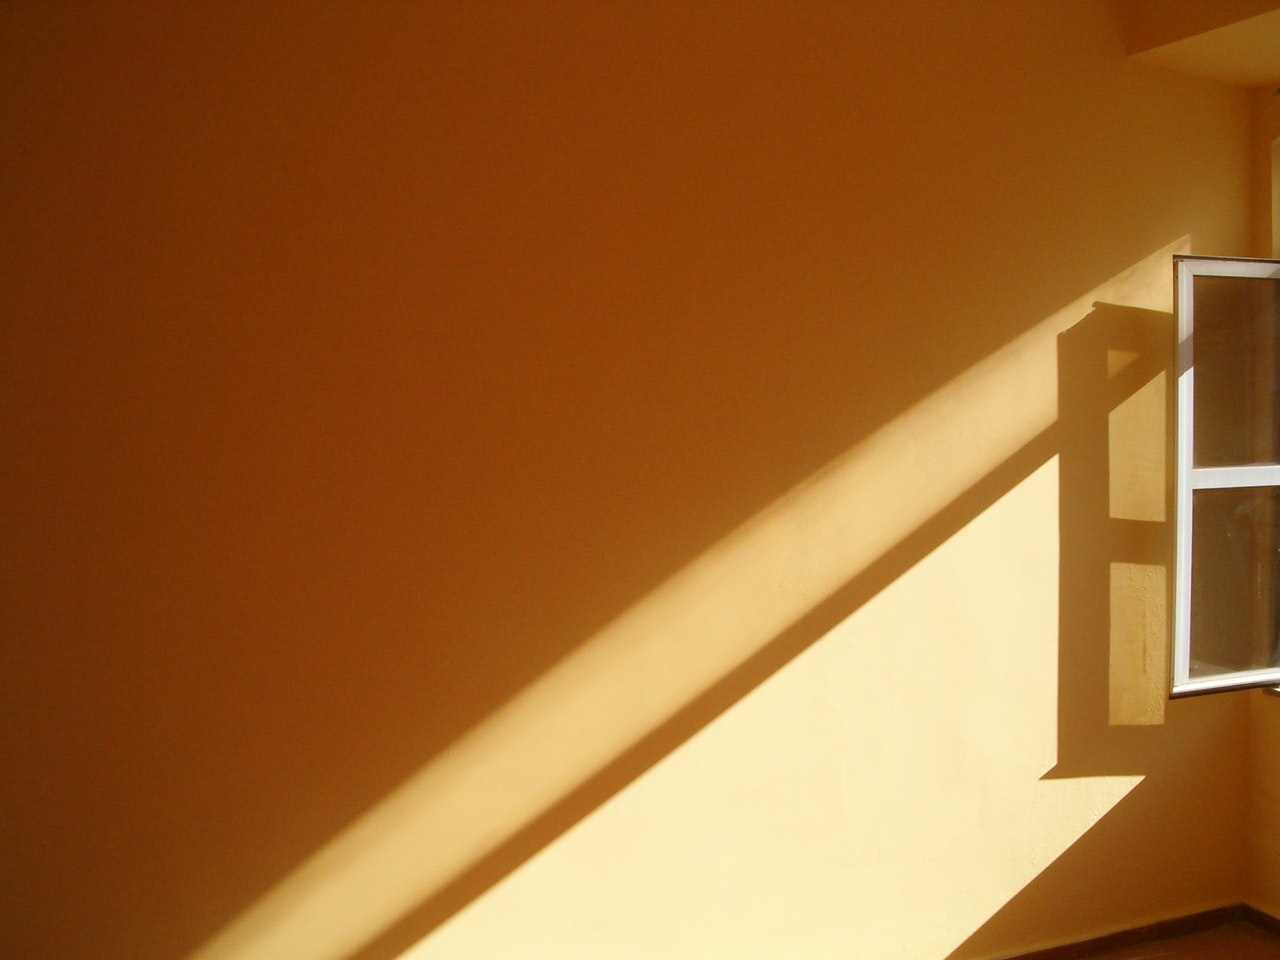 Light filters through a window onto a yellow wall